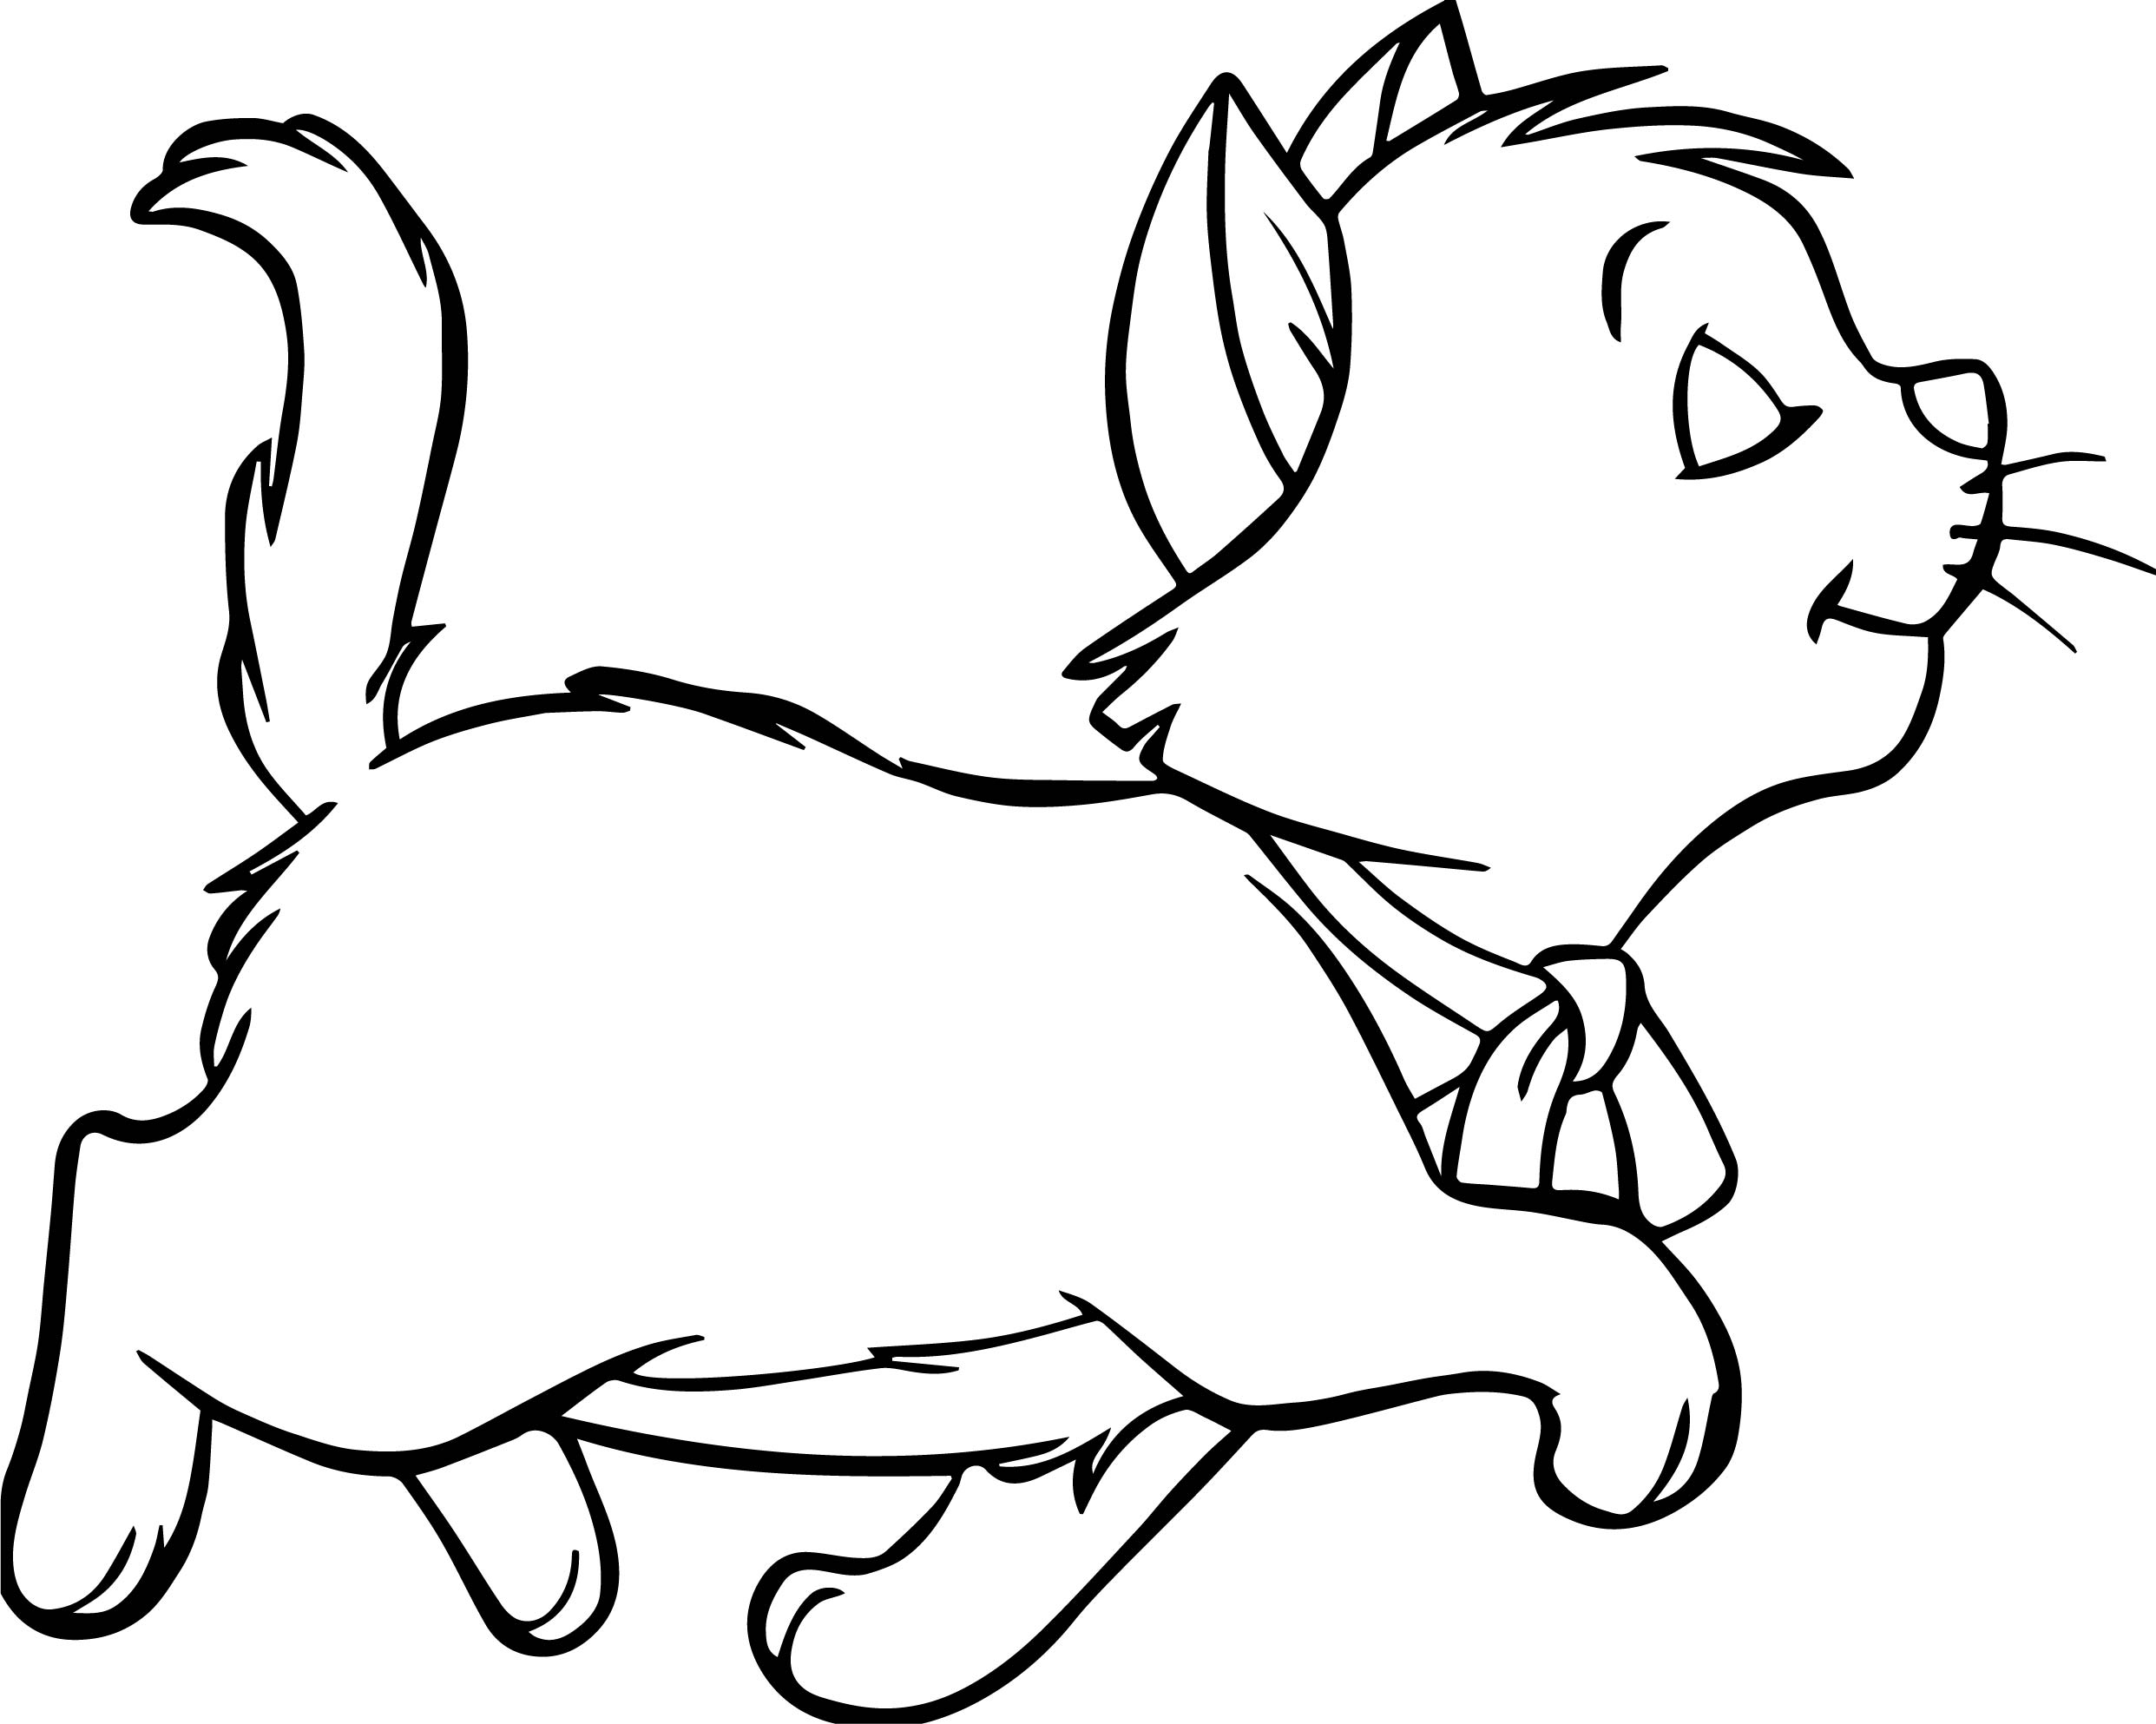 Coloring Pages Aristocats Disney : Walking disney the aristocats coloring page wecoloringpage